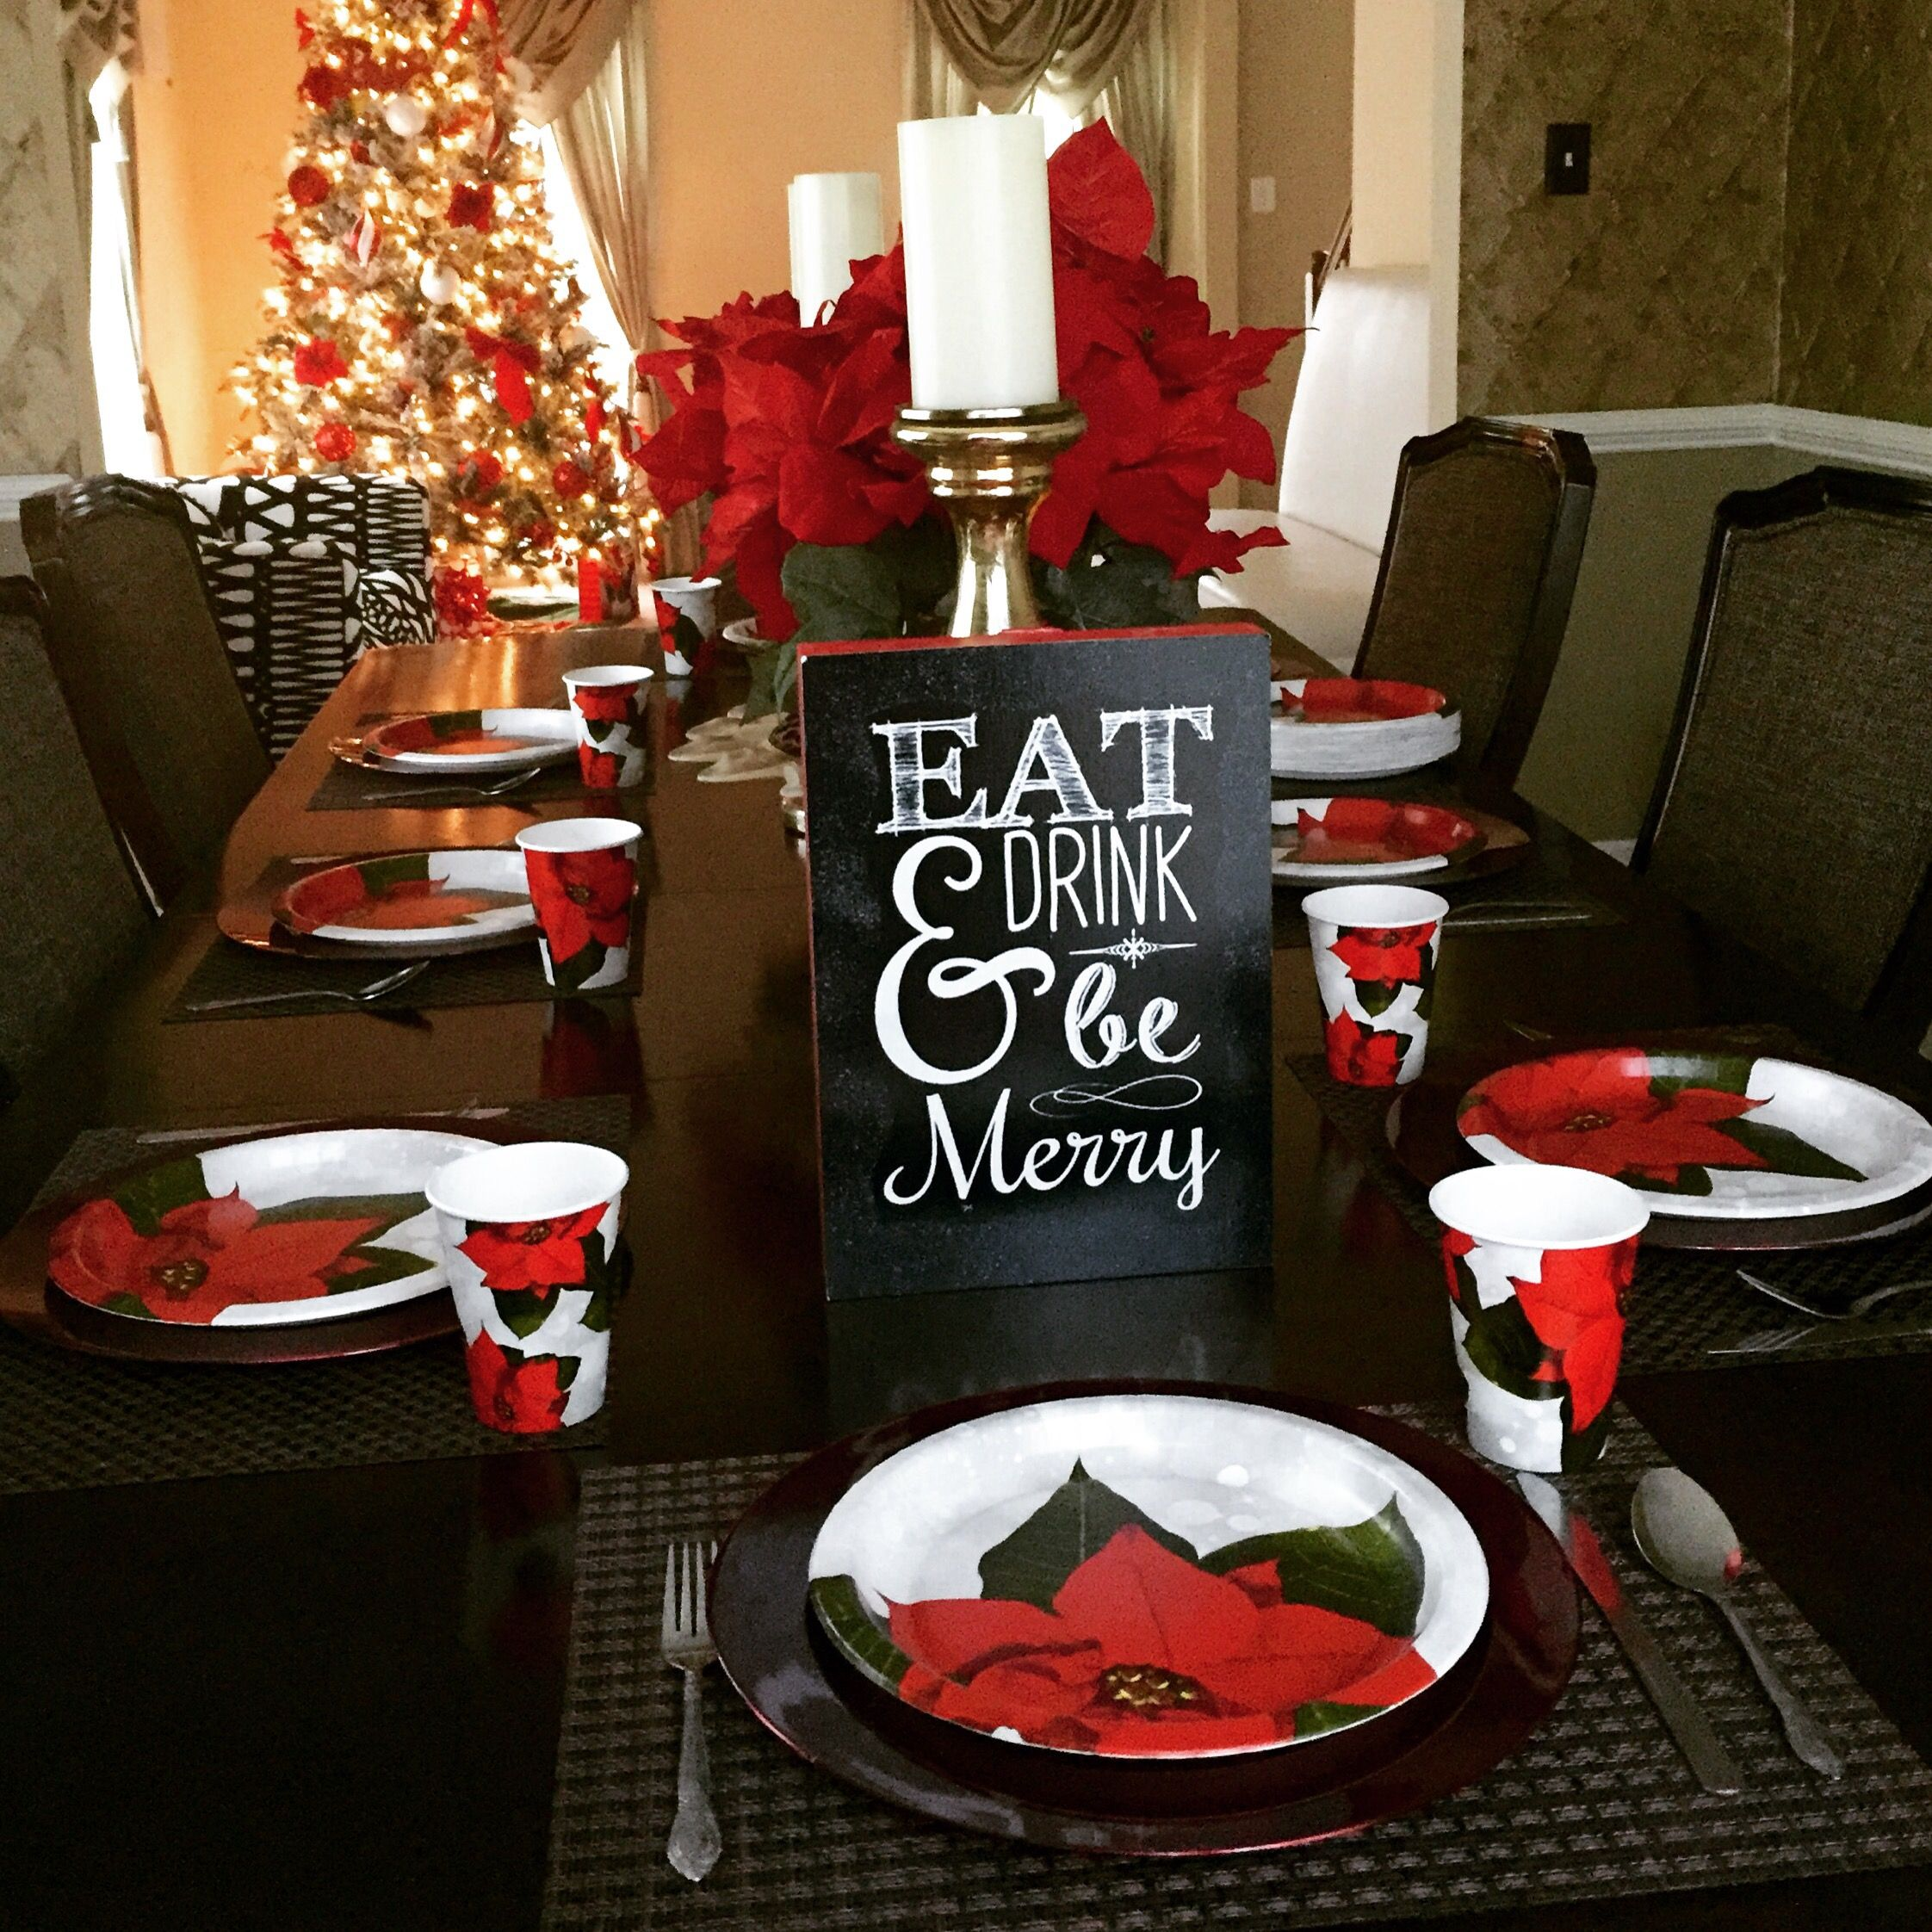 Budget Christmas Decorating Ideas: Budget Christmas Dinner Table Setting & Centerpieces